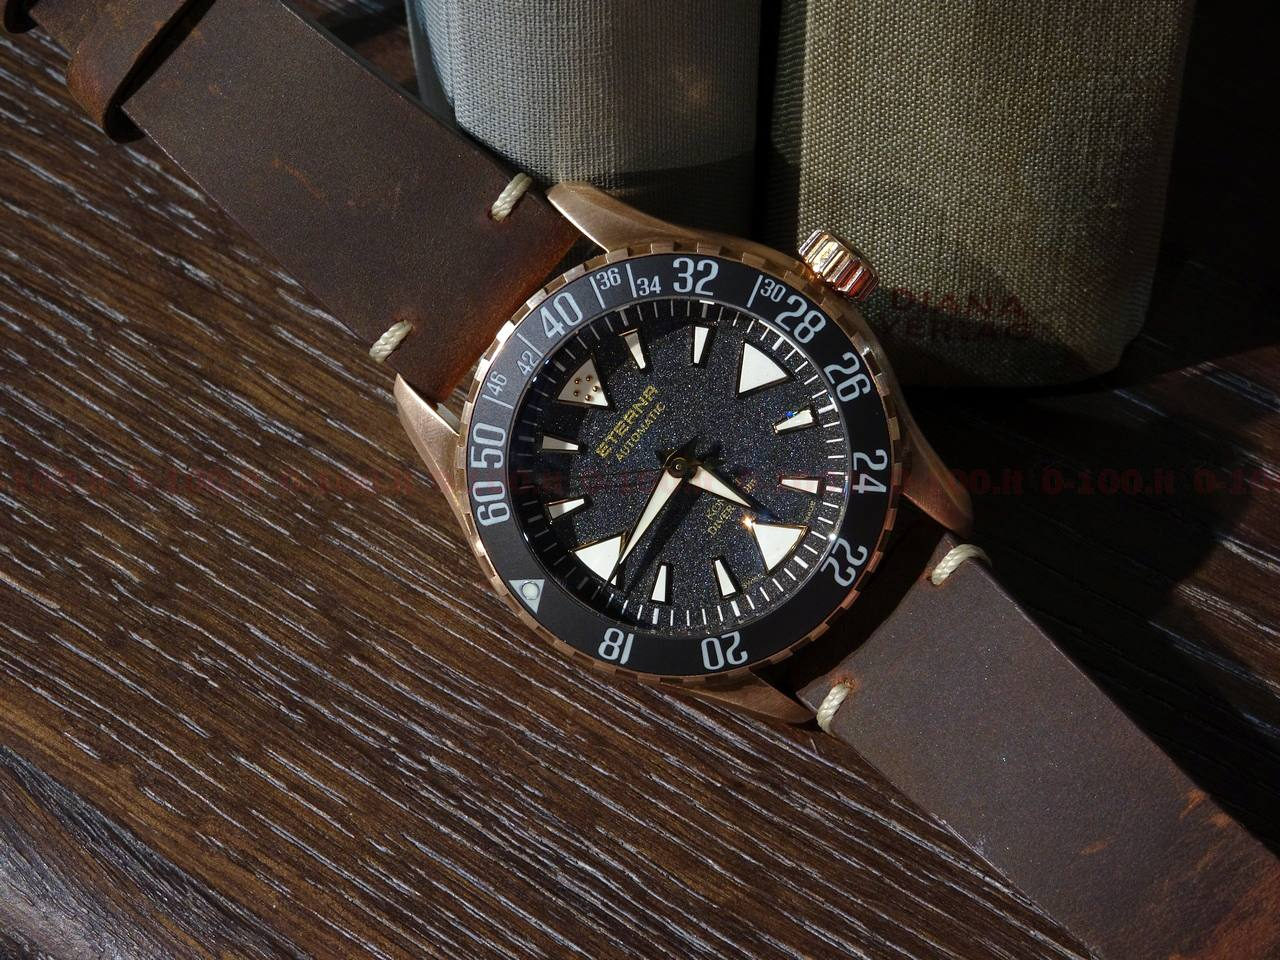 baselworld-2017-ETERNA KONTIKI BRONZE MANUFACTURE LIMITED EDITION REF. 1291.78.49.1422-prezzo-price_0-1008